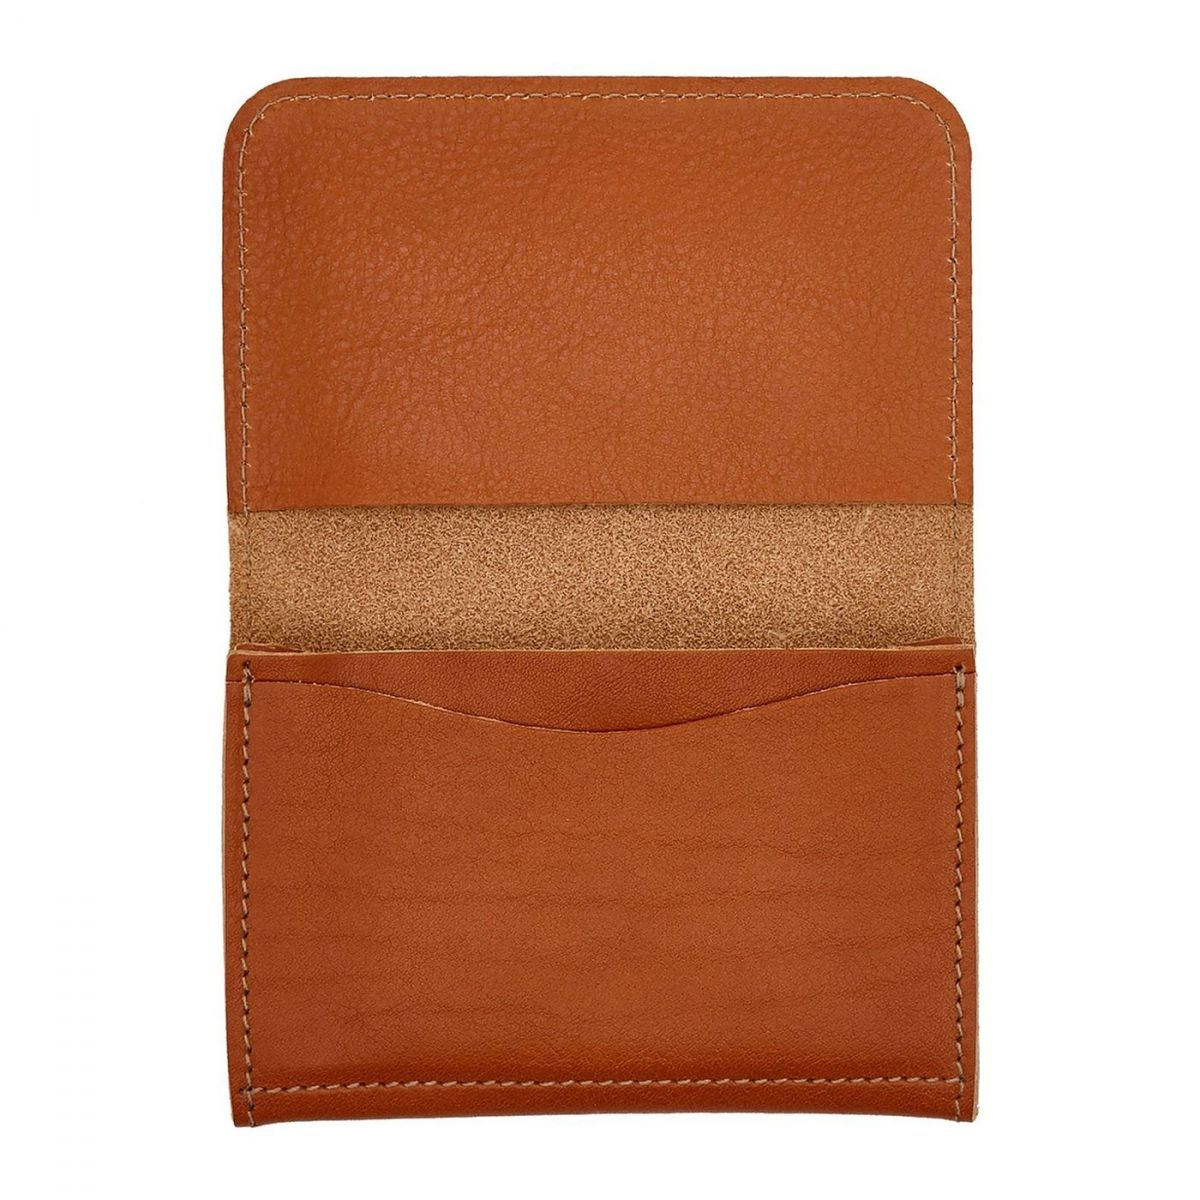 Card Case  in Cowhide Double Leather SCC004 color Caramel | Details